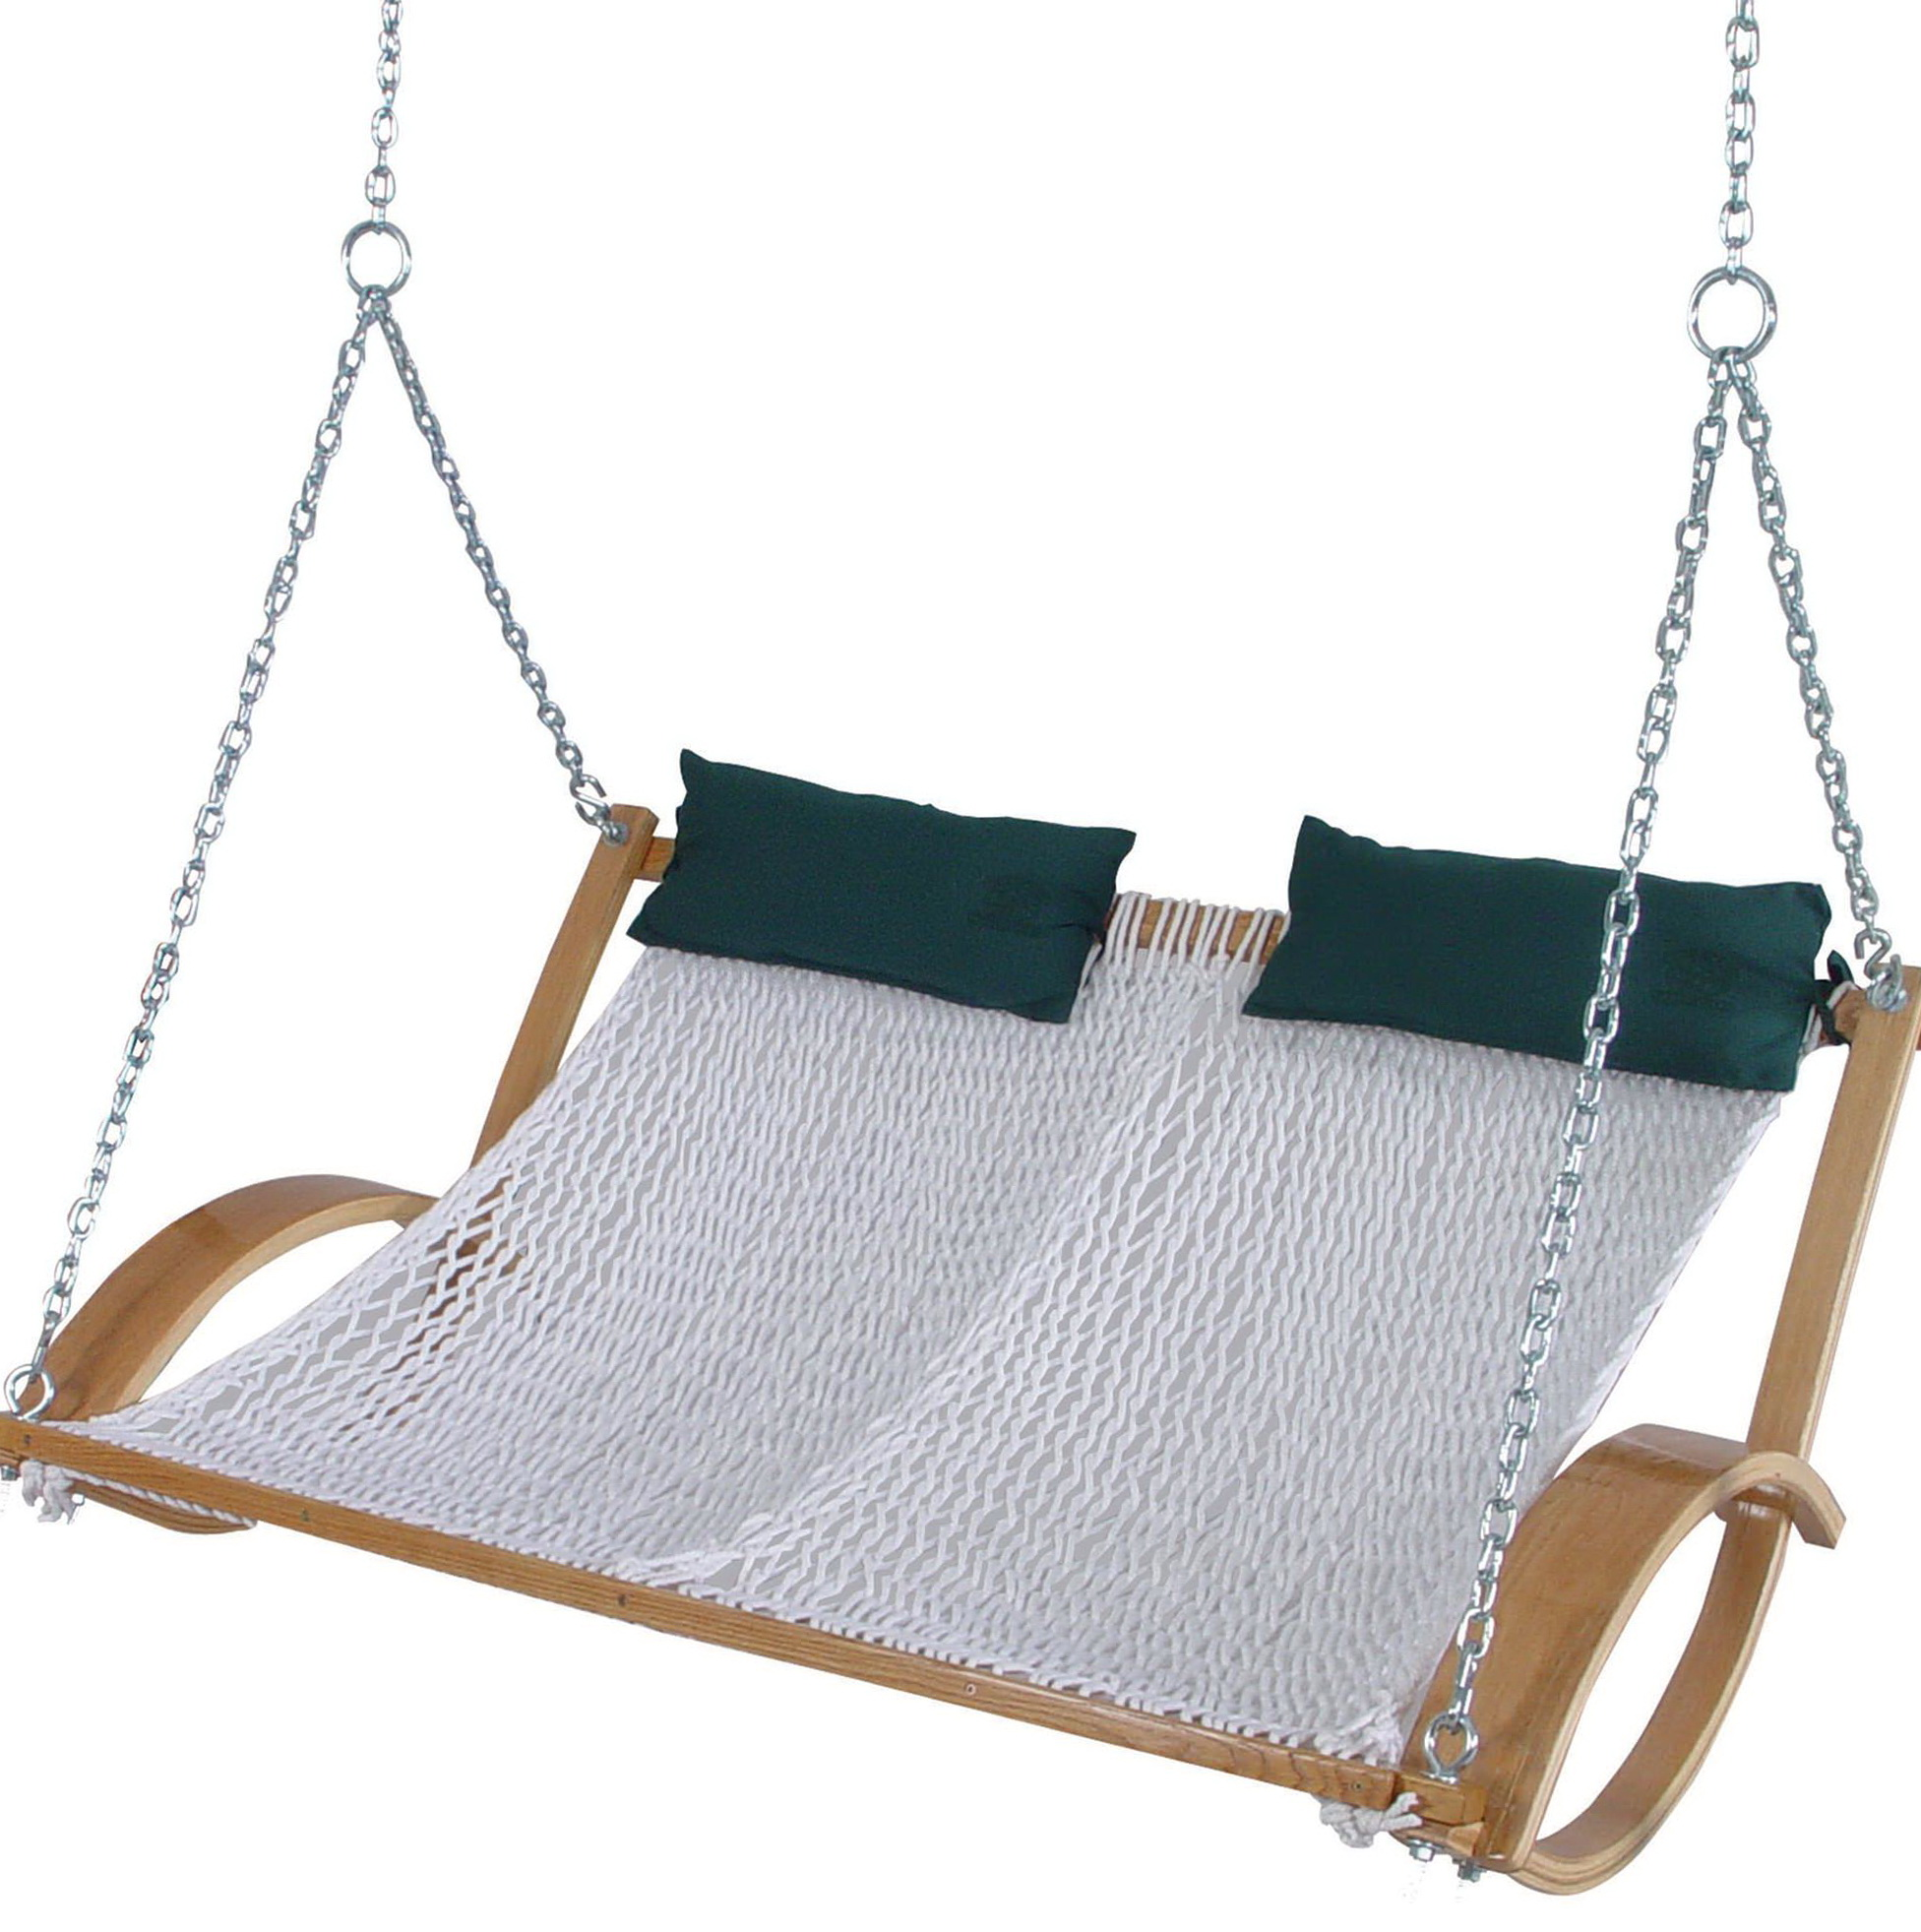 Hang A Porch Swing With Rope